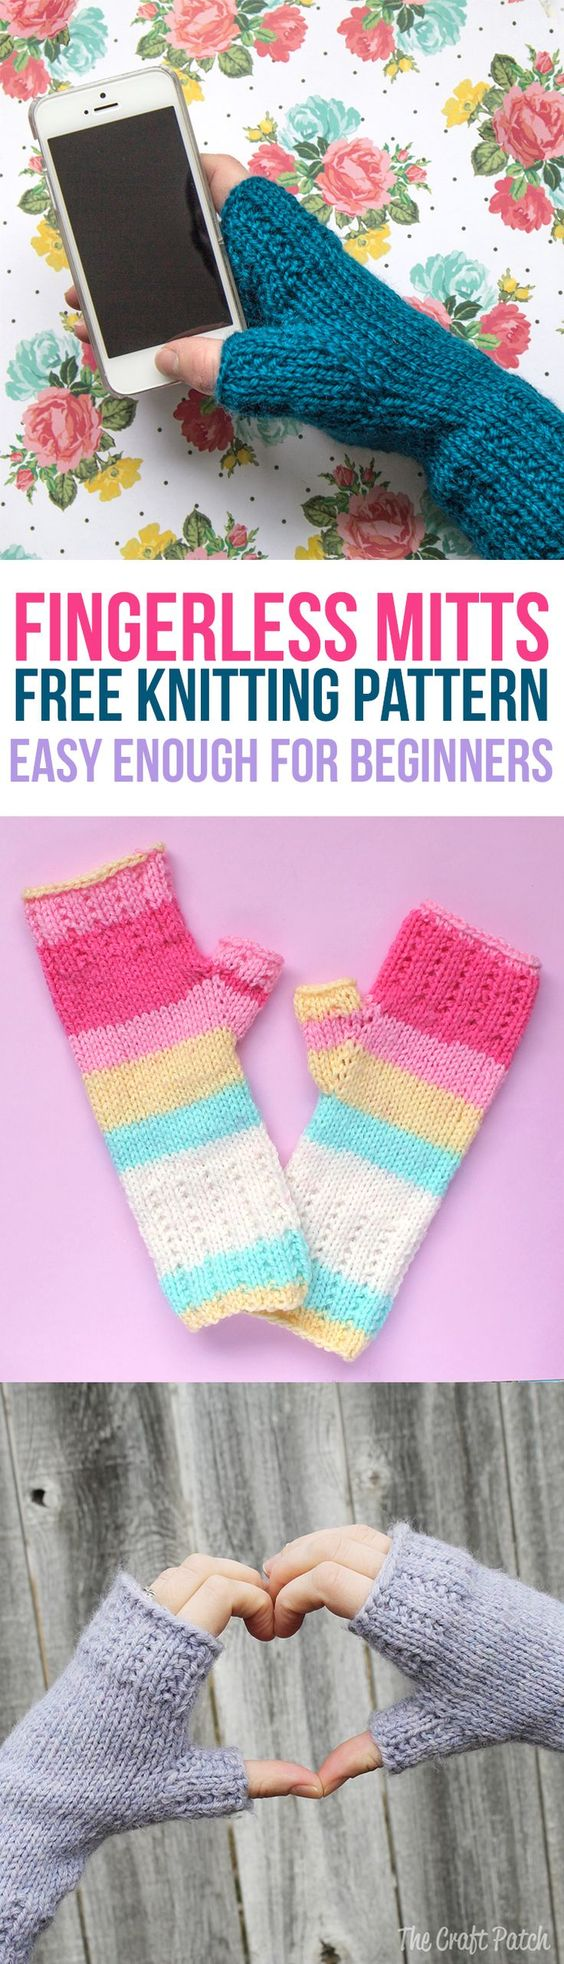 Learn To Knit Happy Hands Fingerless Mitts Free Pattern Beginner